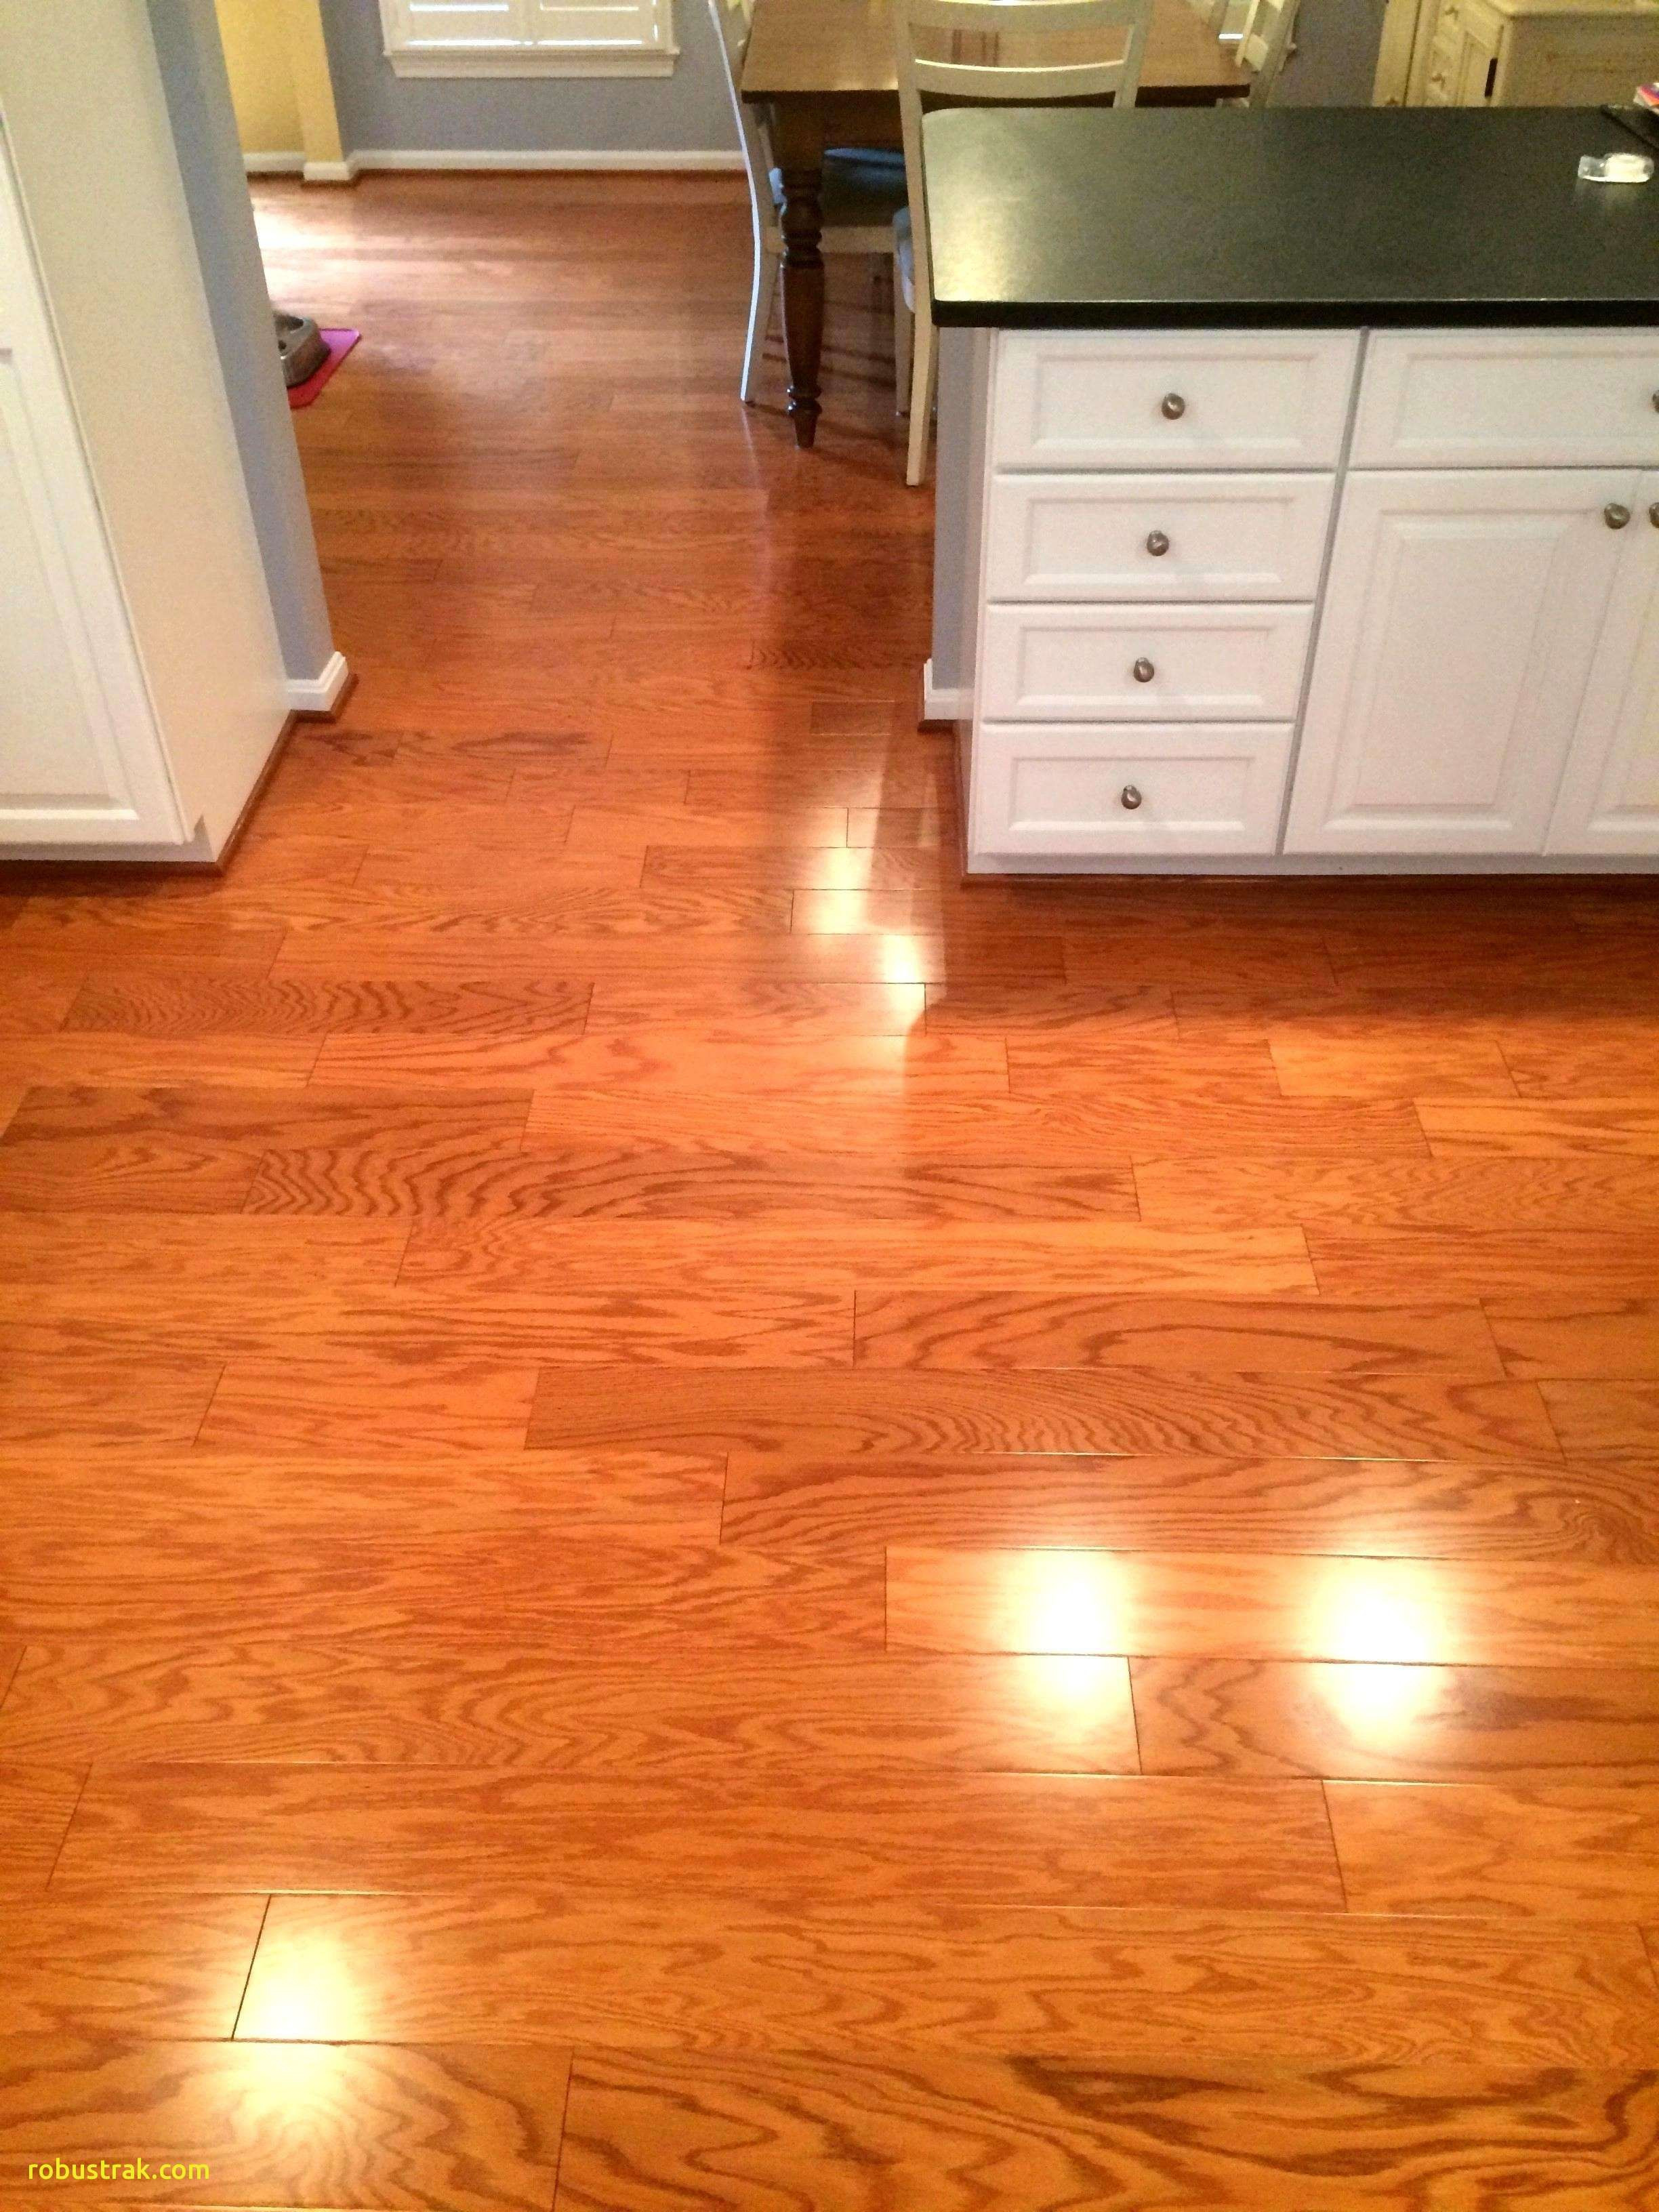 can you use hardwood floor cleaner on laminate of formaldehyde free laminate flooring 40 where to buy hardwood pertaining to formaldehyde free laminate flooring 40 where to buy hardwood flooring